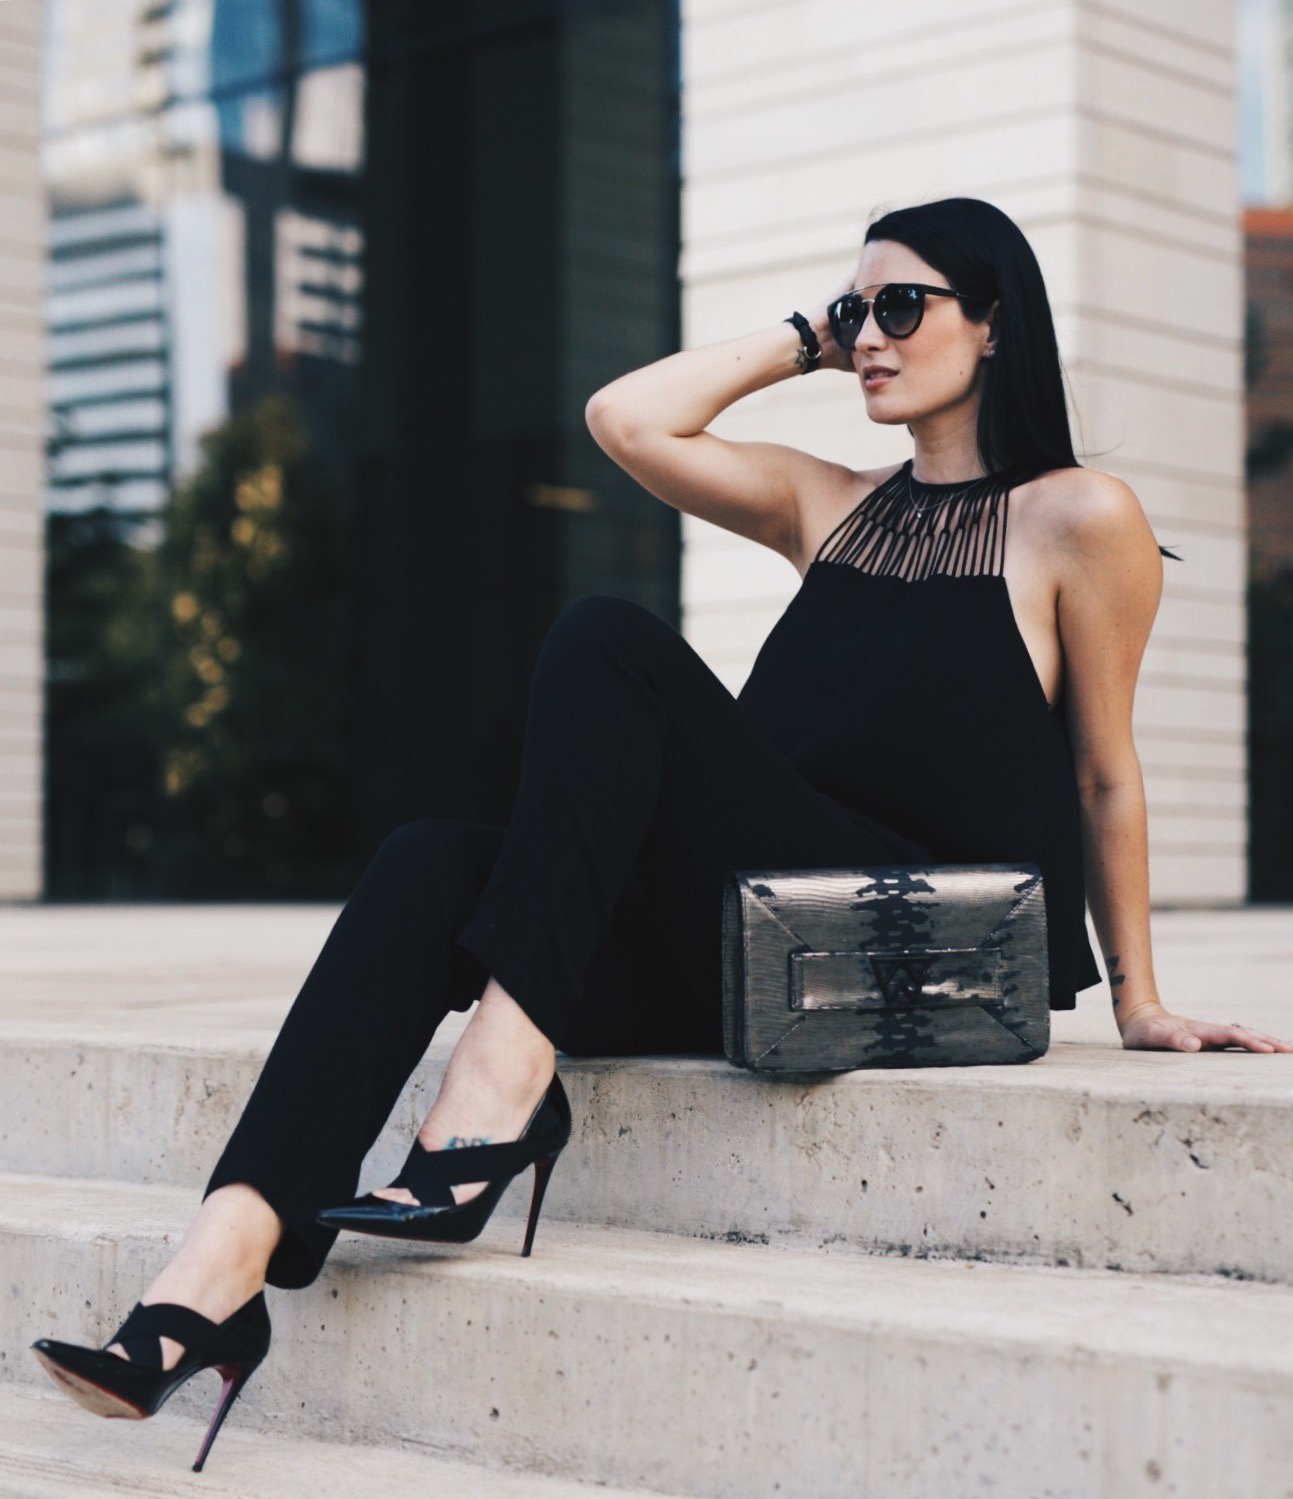 Ella Moss Jumpsuit | how to style a jumpsuit | how to wear a jumpsuit | jumpsuit style ideas | summer fashion tips | summer outfit ideas | summer style tips | what to wear for summer | warm weather fashion | fashion for summer | style tips for summer | outfit ideas for summer || Dressed to Kill